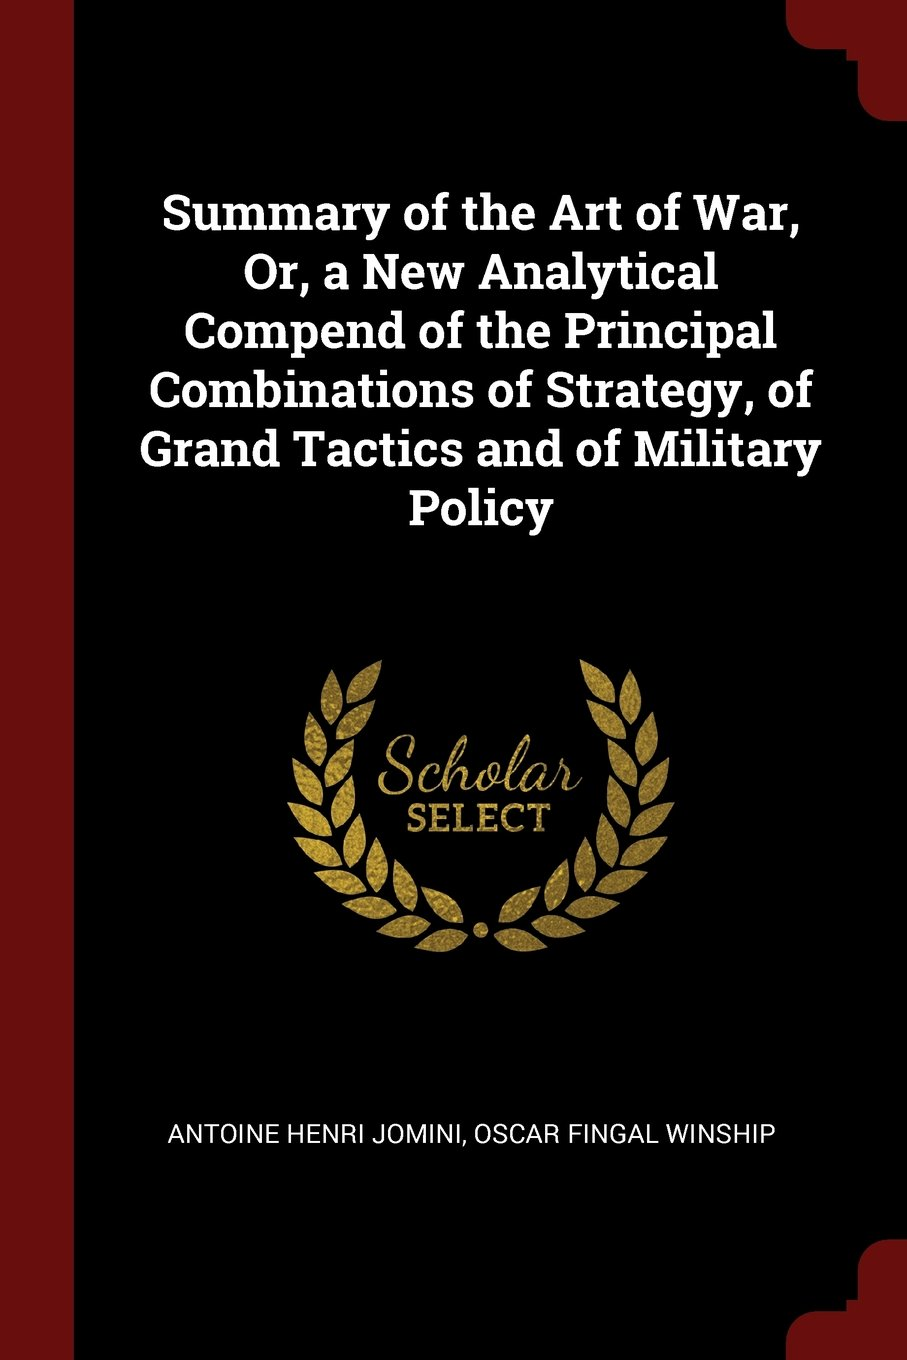 Download Summary of the Art of War, Or, a New Analytical Compend of the Principal Combinations of Strategy, of Grand Tactics and of Military Policy ebook